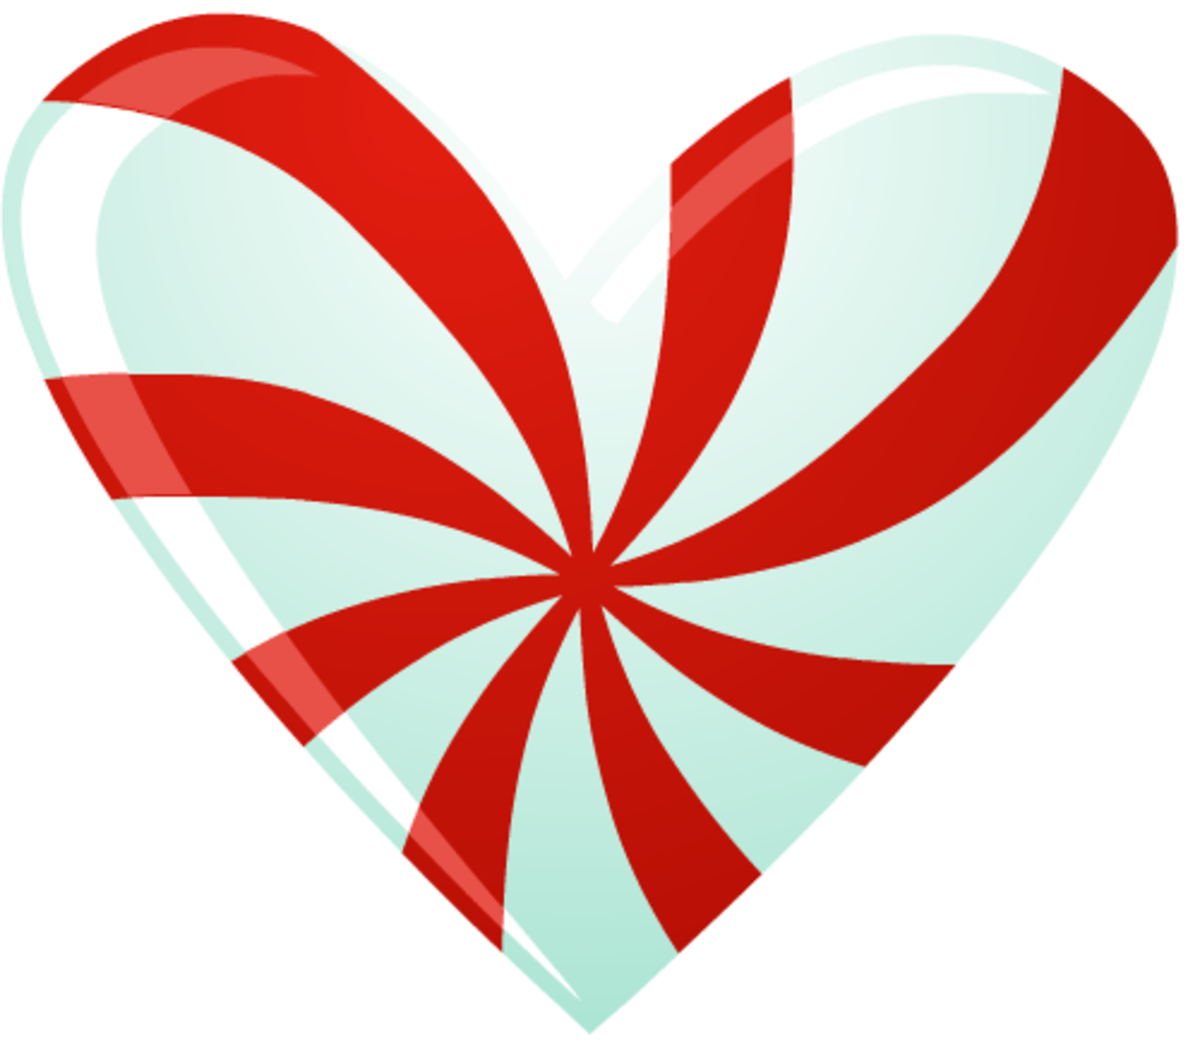 Candy cane heart clipart image